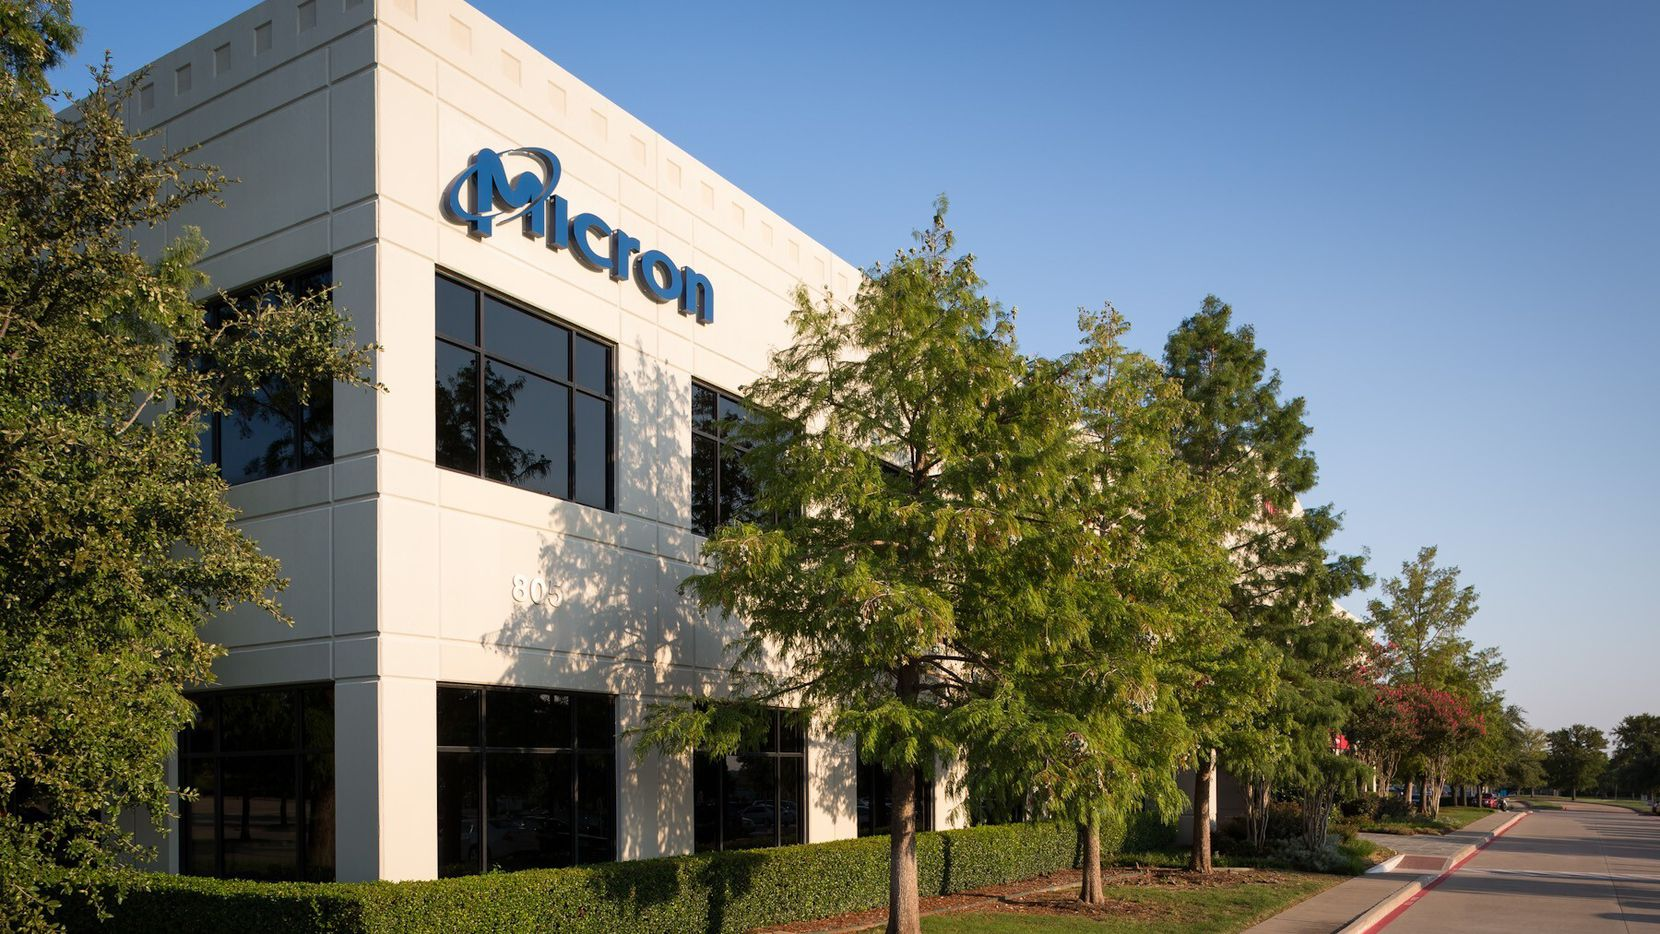 Based in Idaho, Micron Technology has more than 40,000 employees in 17 countries. It has two floors in the One Bethany West building near U.S. Highway 75 in Allen that house design engineering operations.